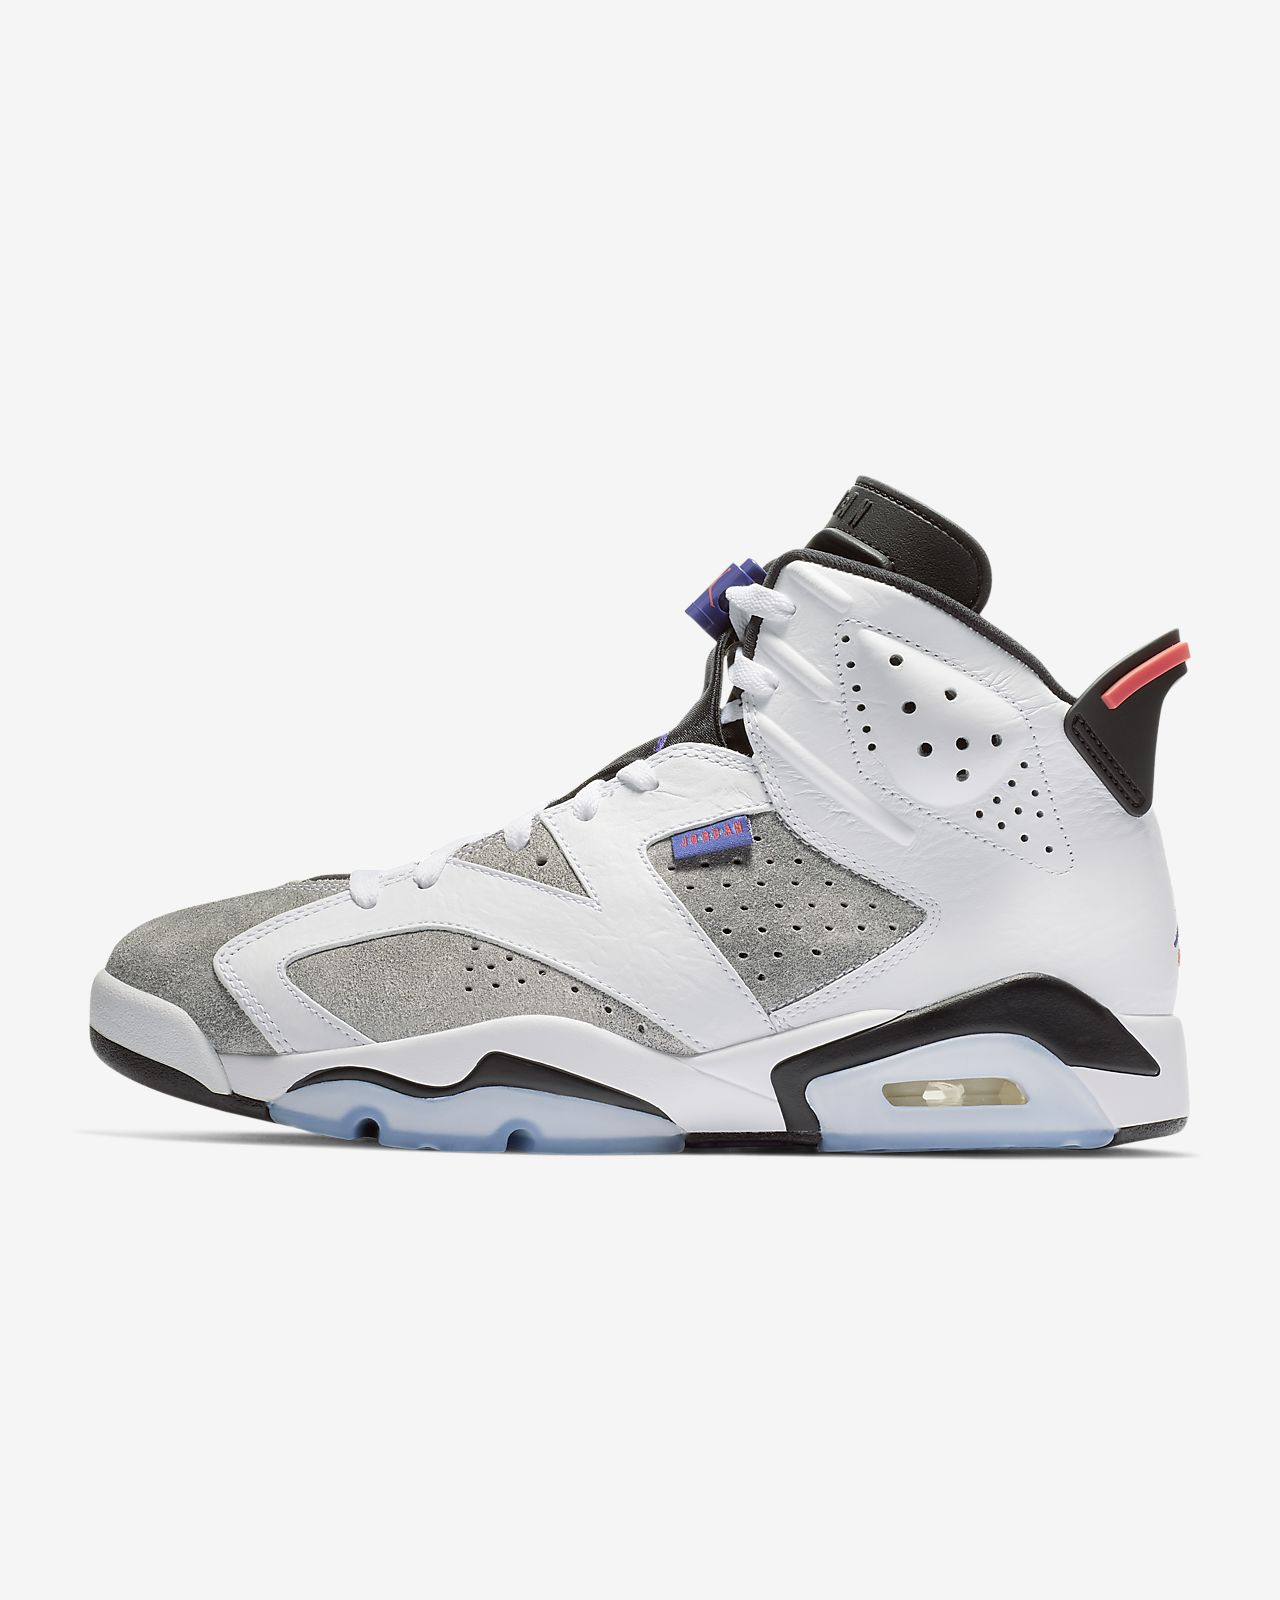 acb7e7833c7b Air Jordan 6 Retro Men s Shoe. Nike.com